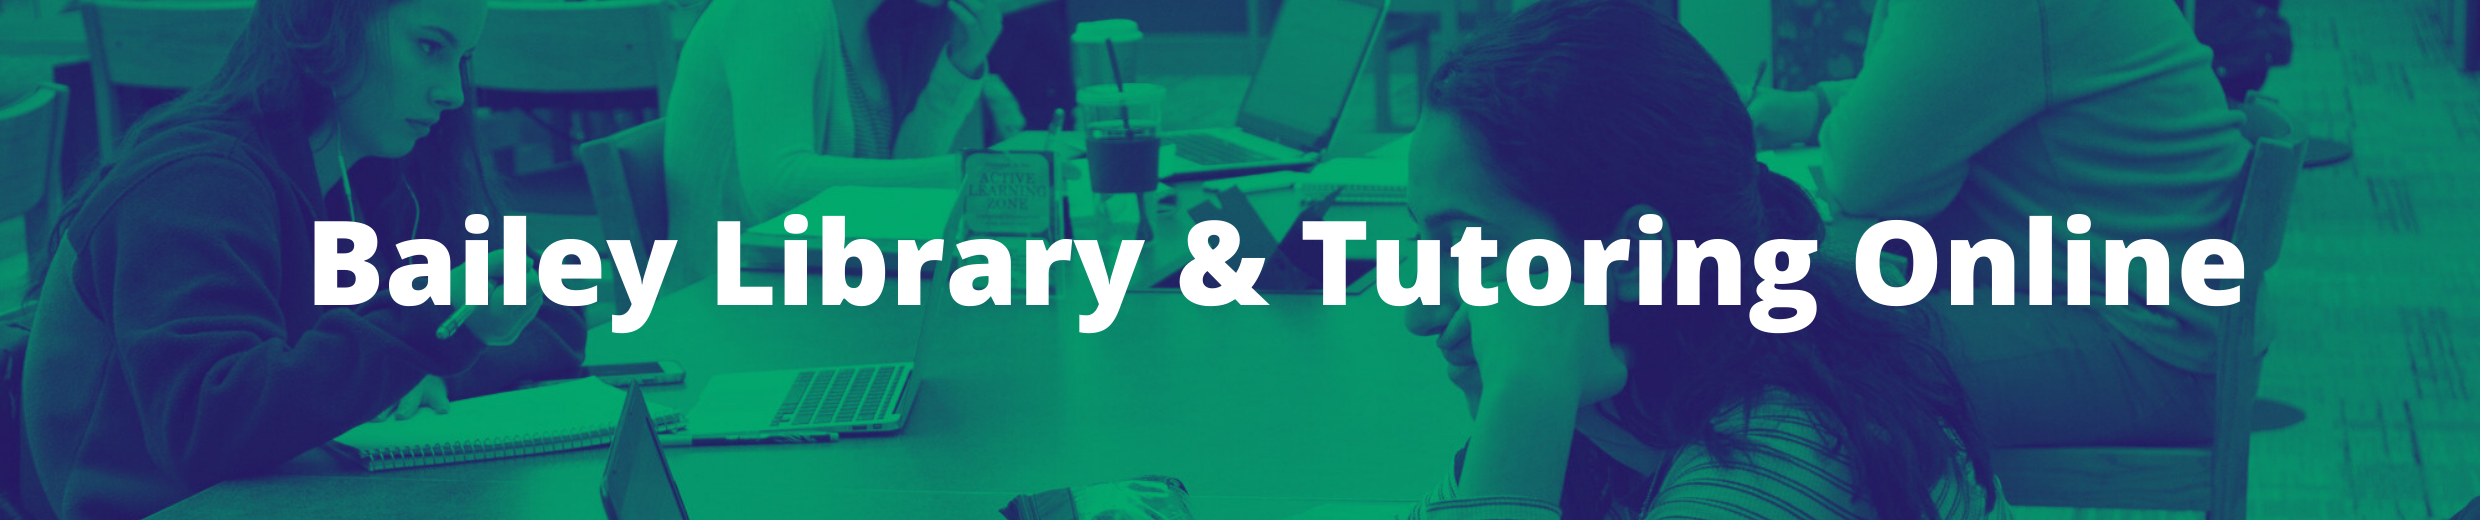 Bailey Library and Tutoring Online Header